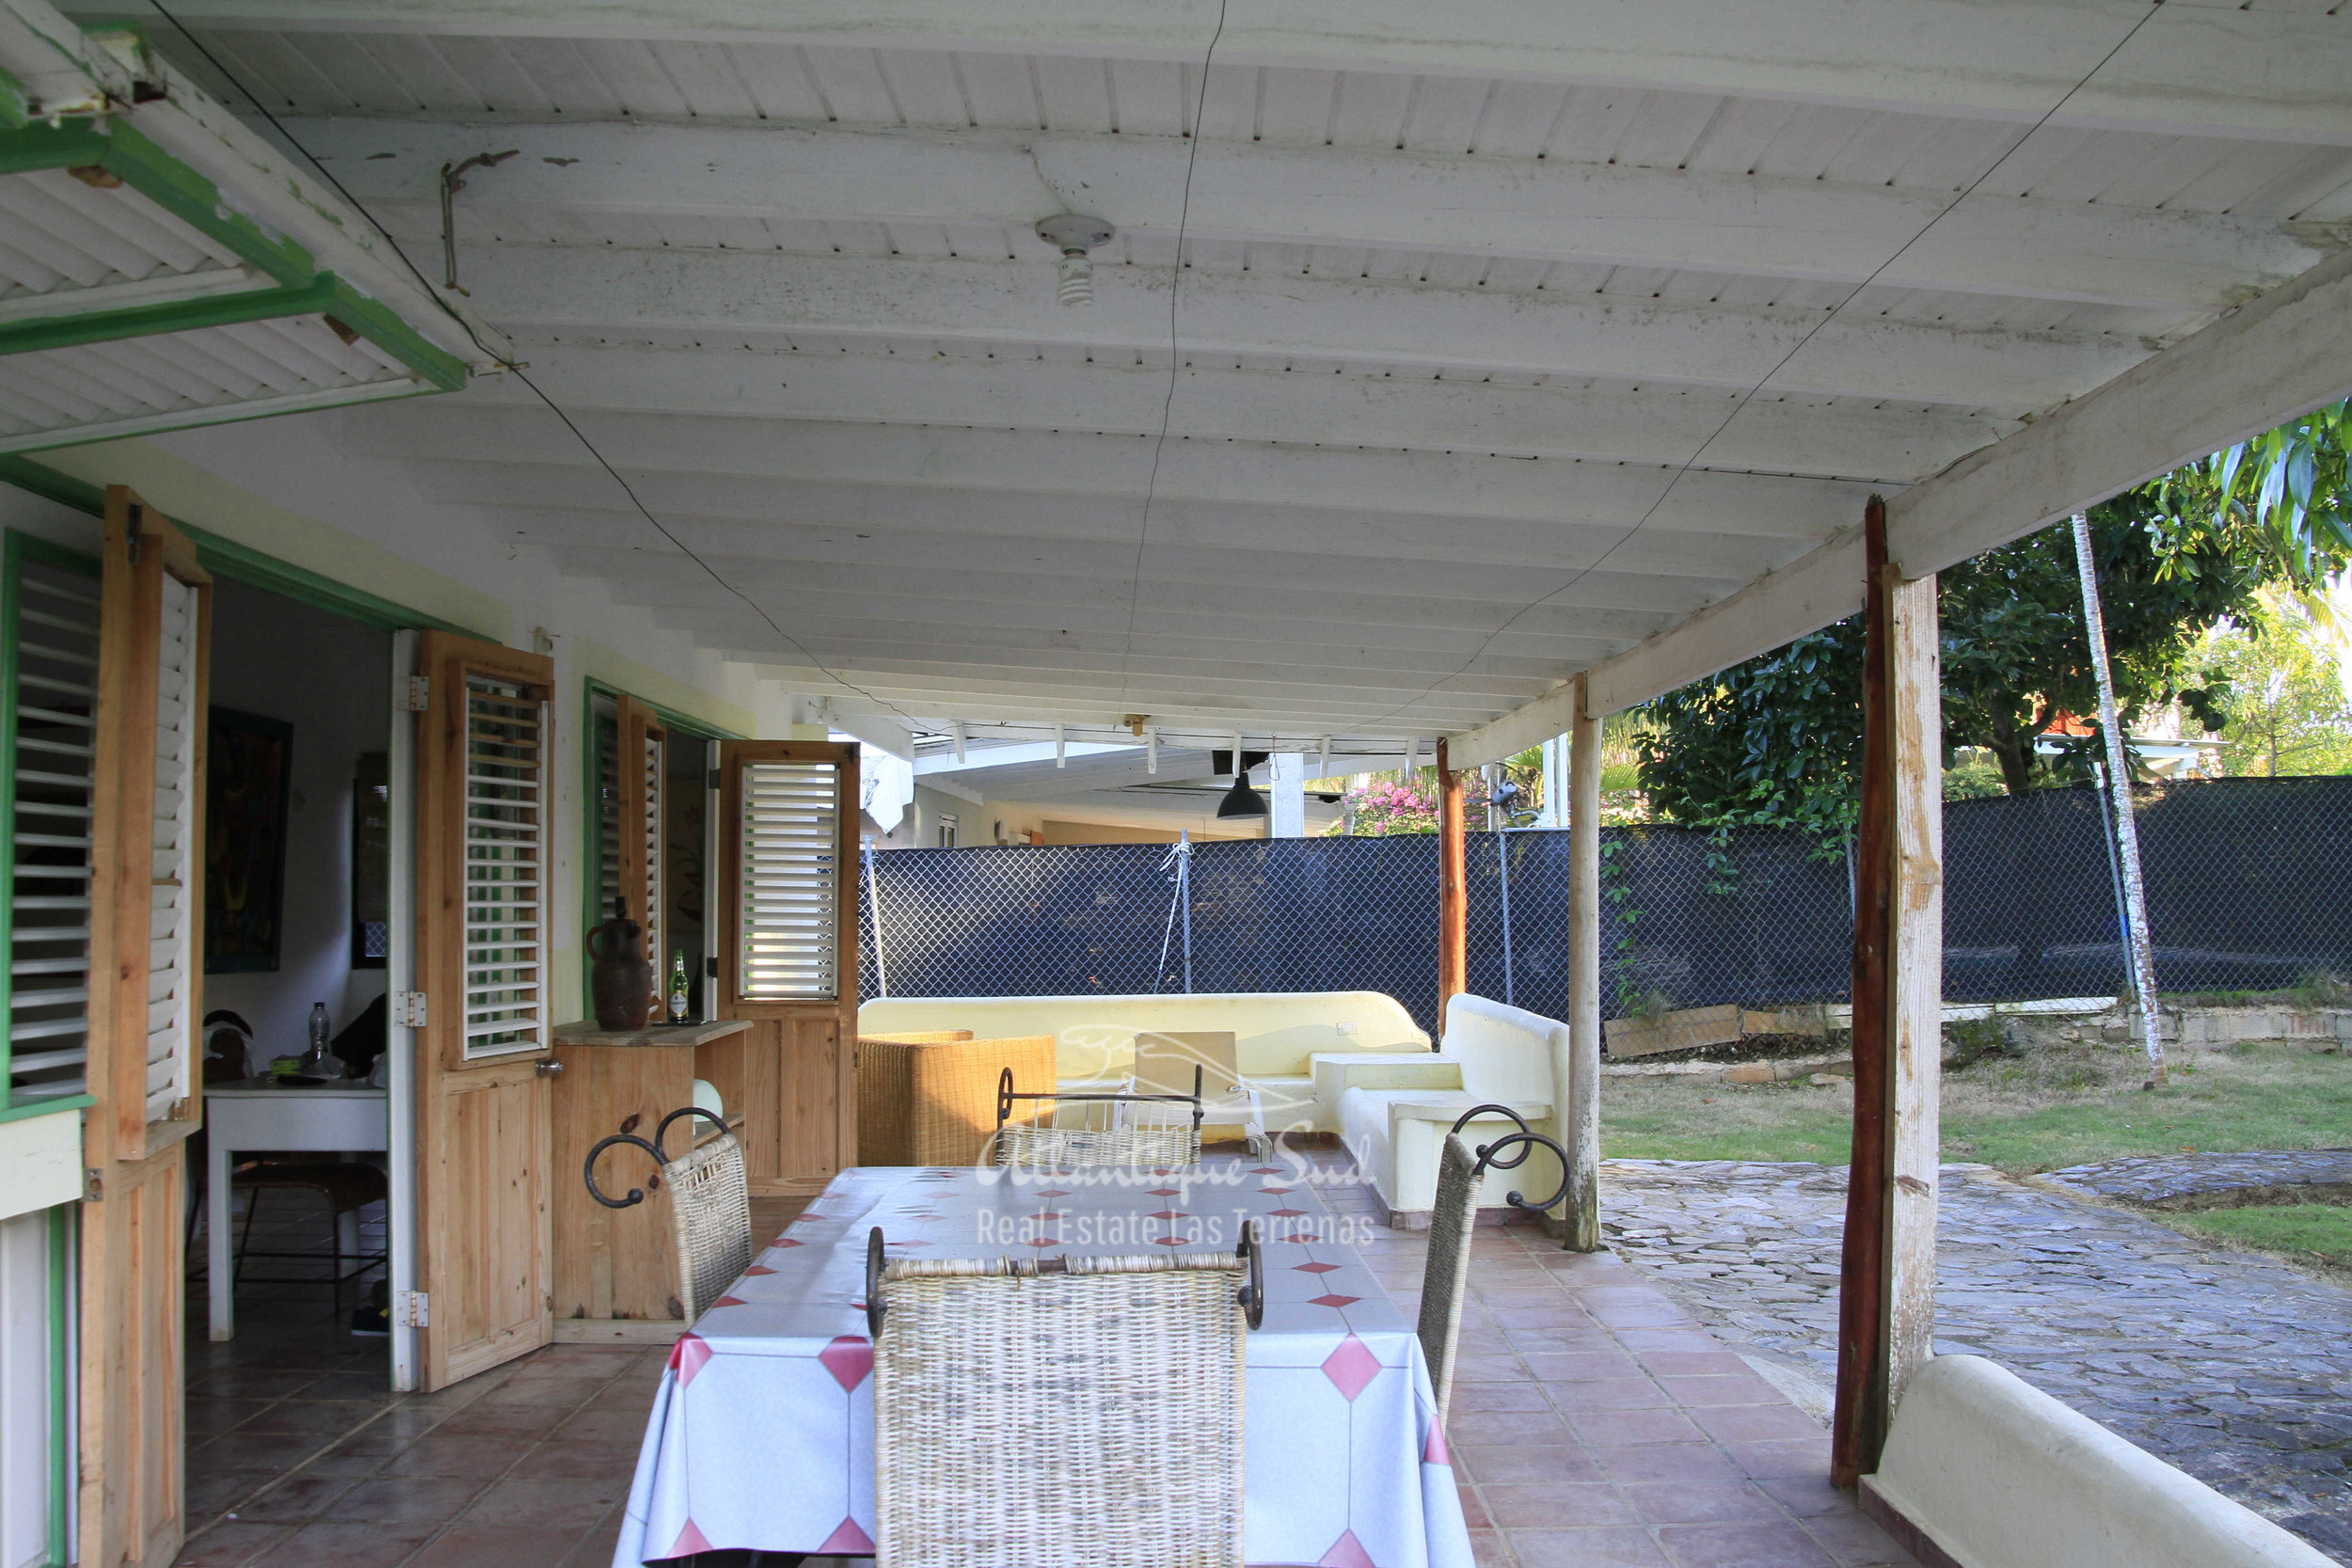 Charming villa in central location Real Estate Las Terrenas Atlantique Sud Dominican Republic9.jpg